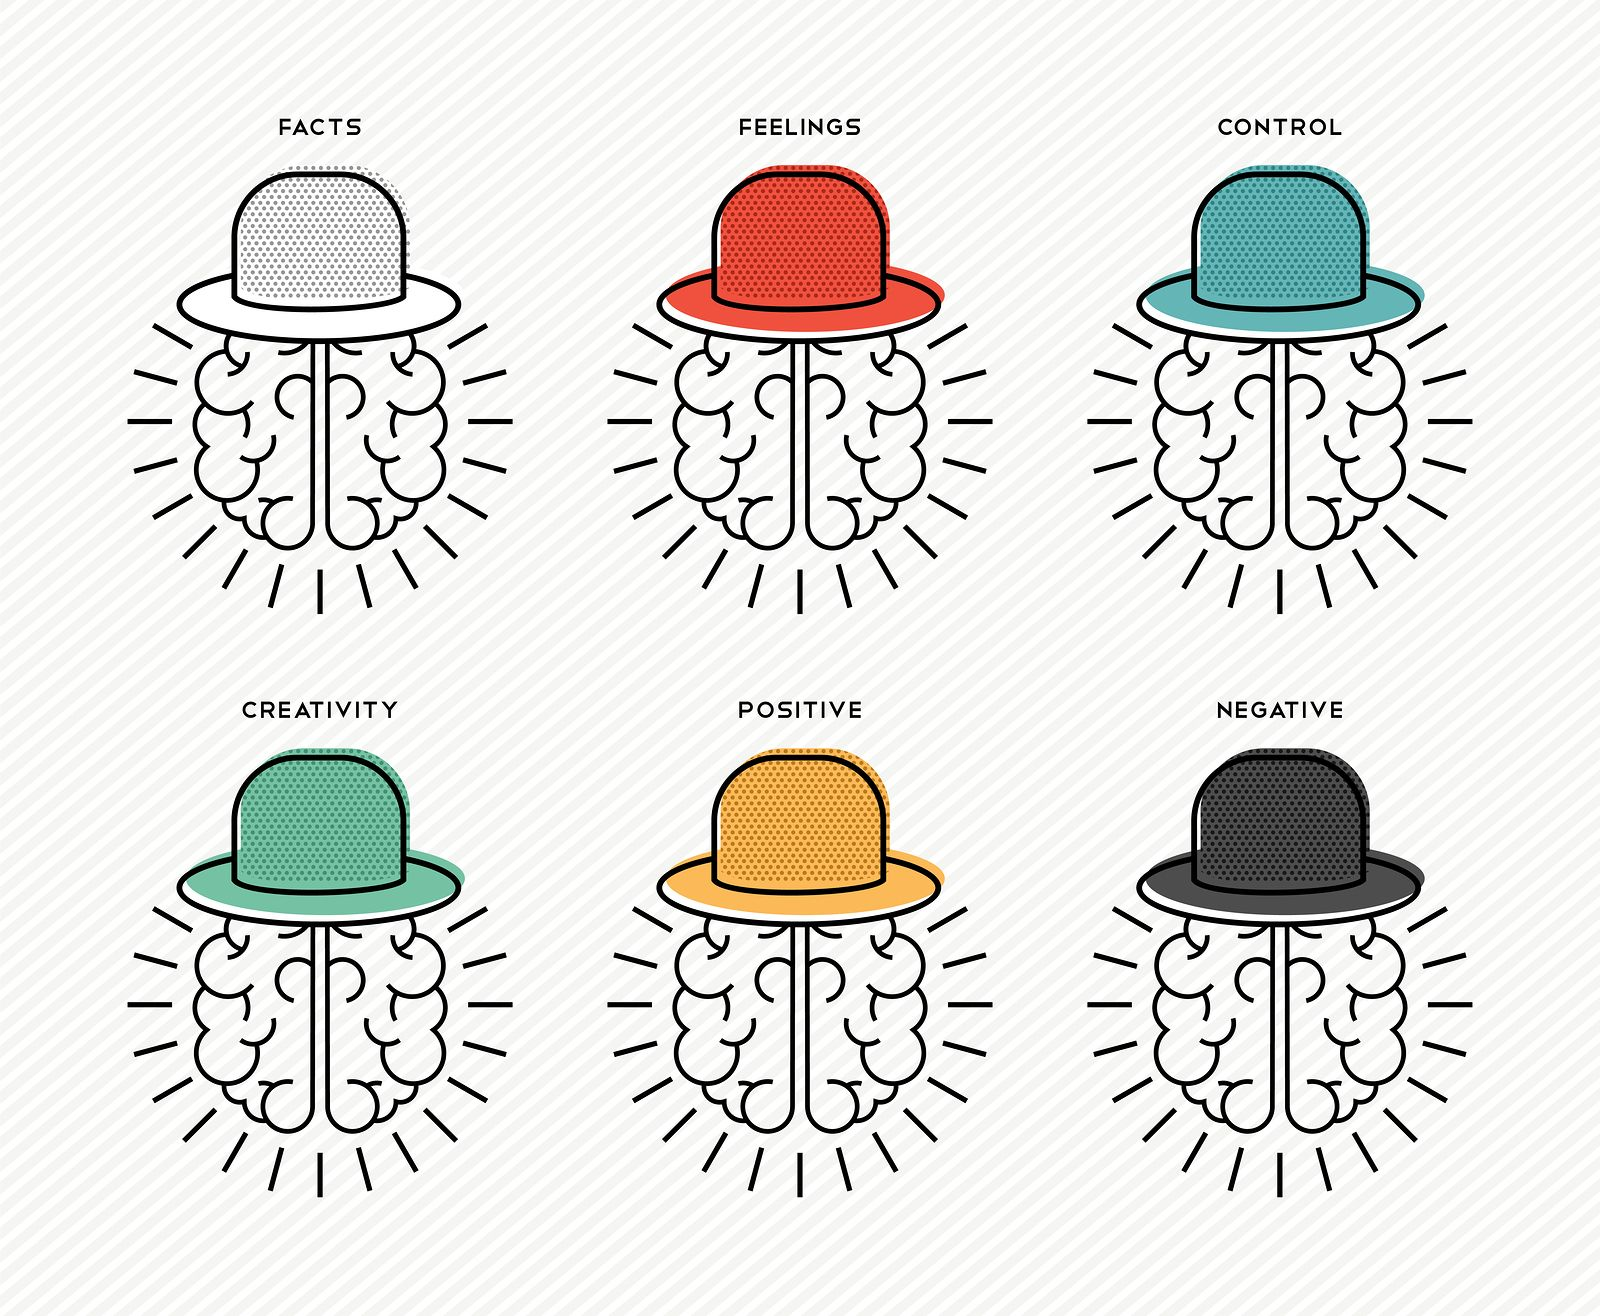 Six Thinking Hats Theory and How to Apply It to Problem-Solving